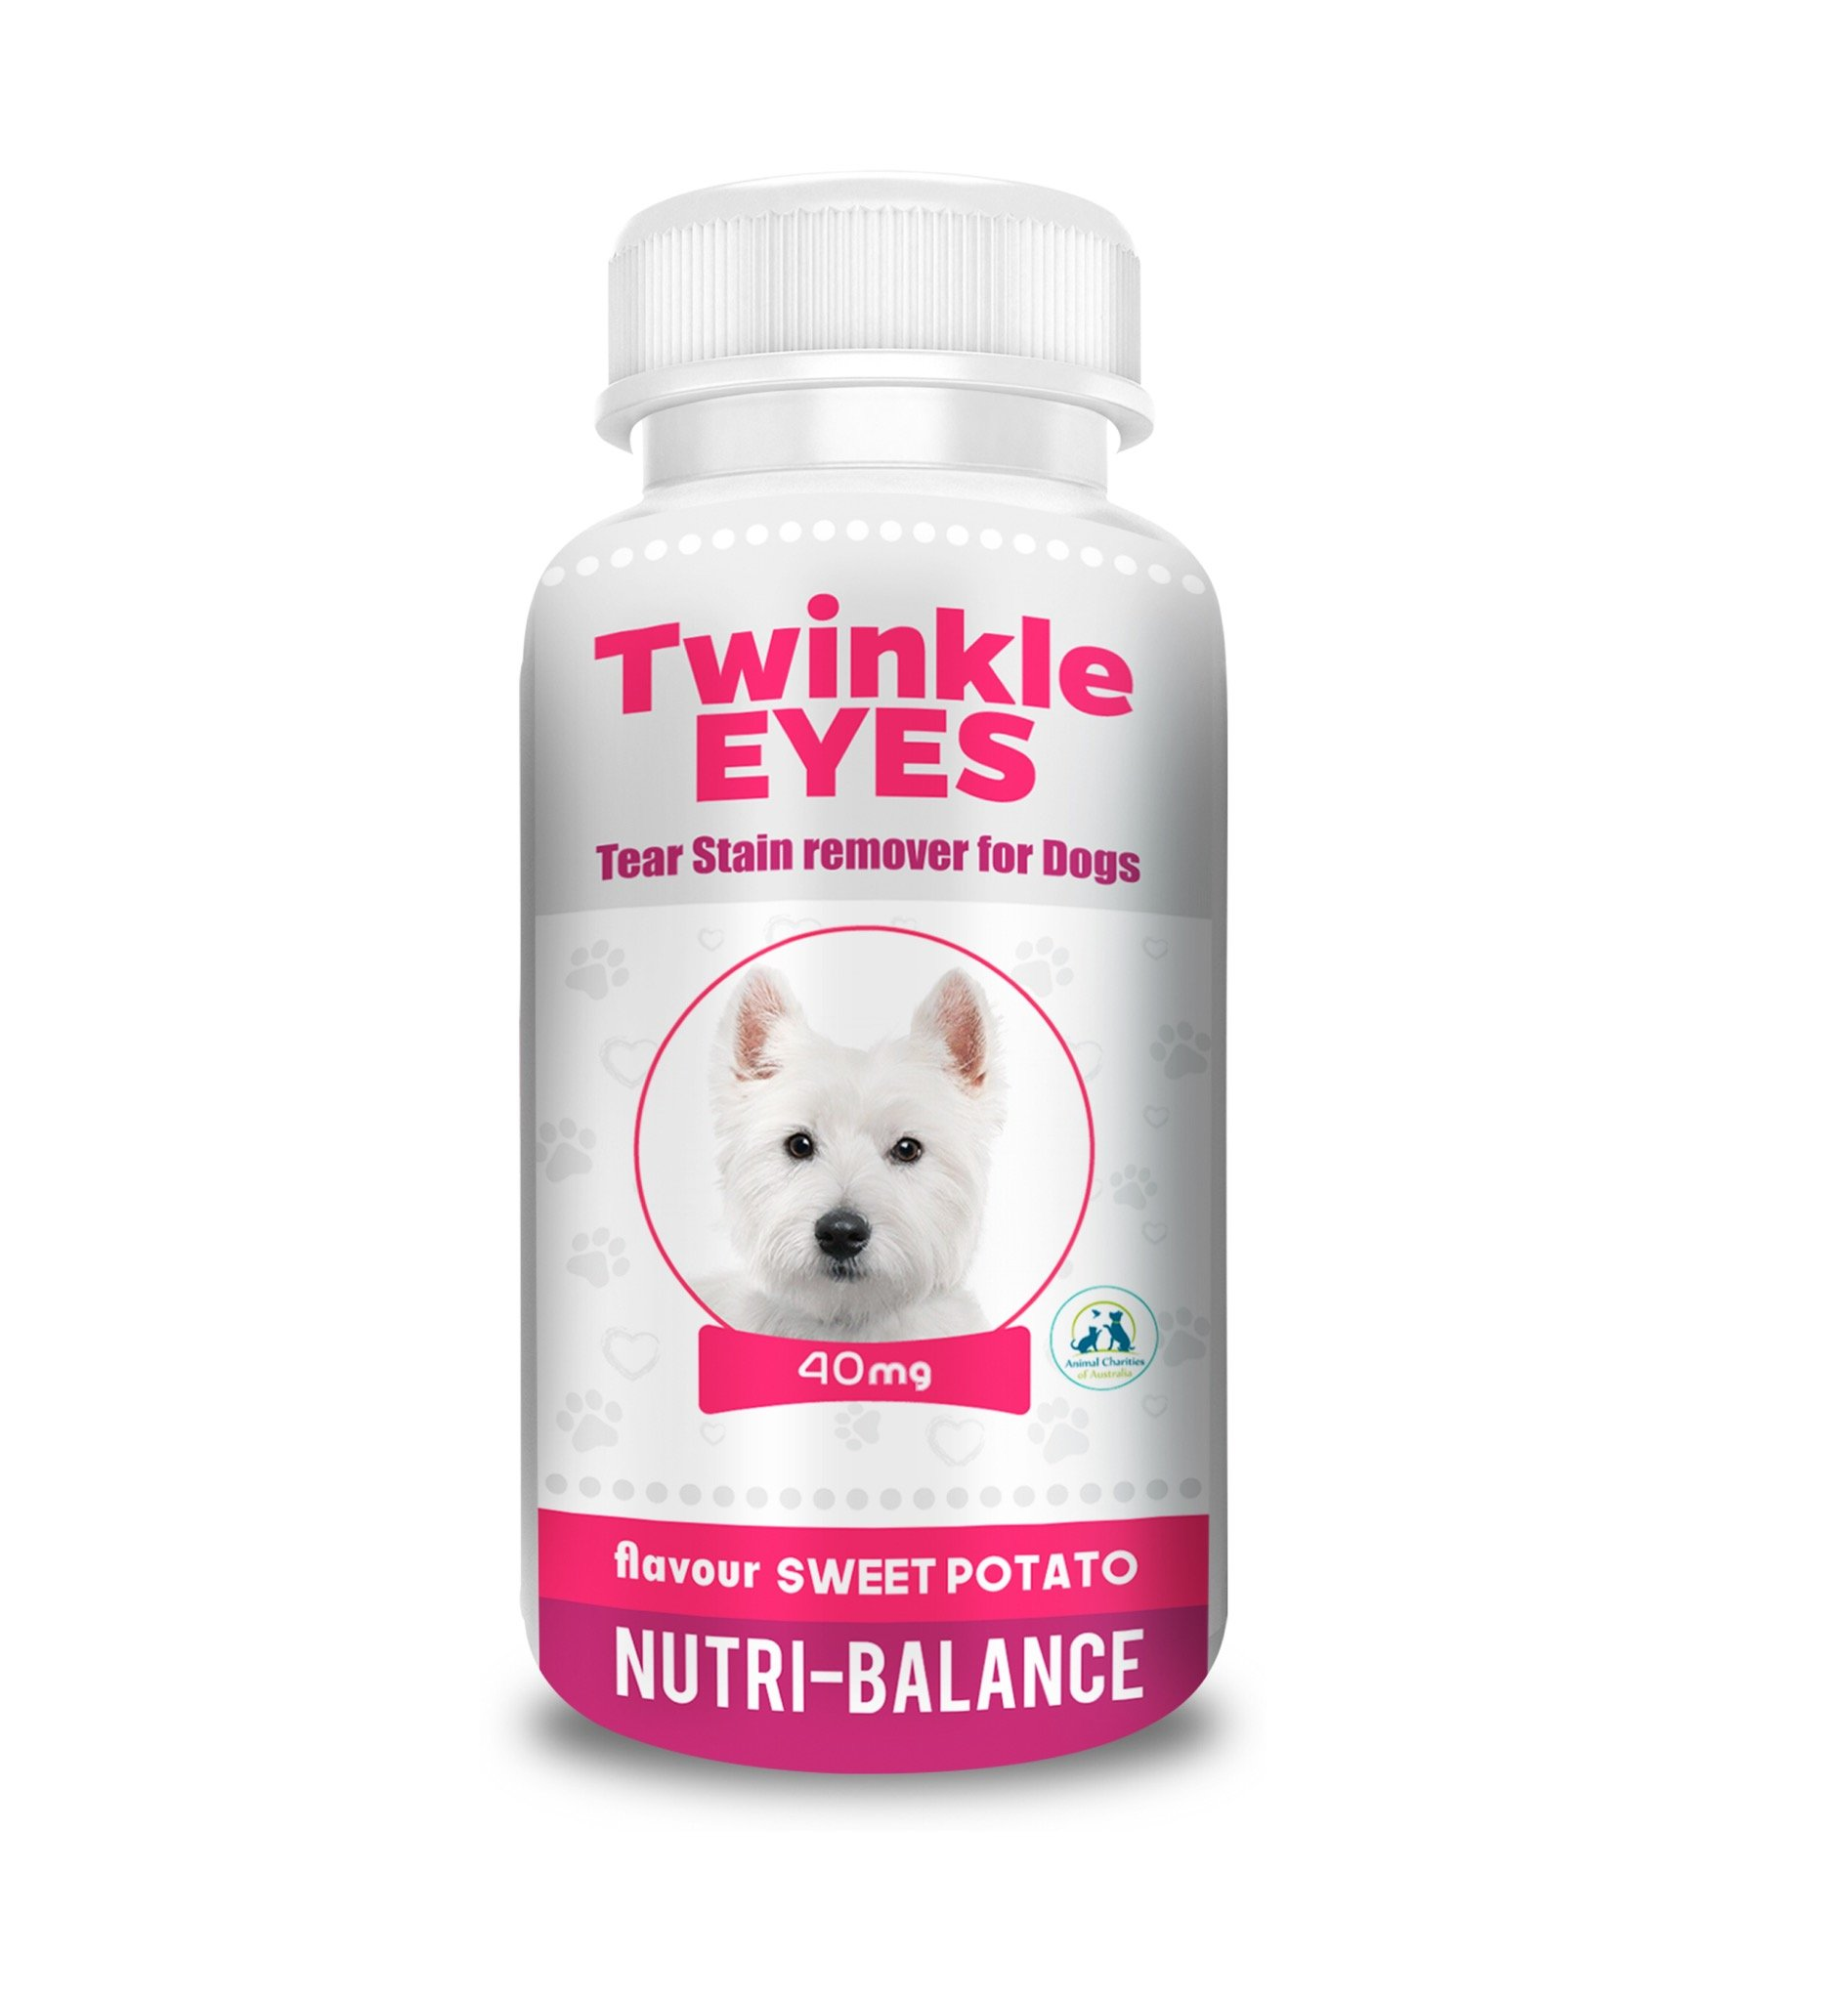 TWINKLE EYES Tear Stain Remover for Dogs - Sweet Potato 40g by TWINKLE EYES